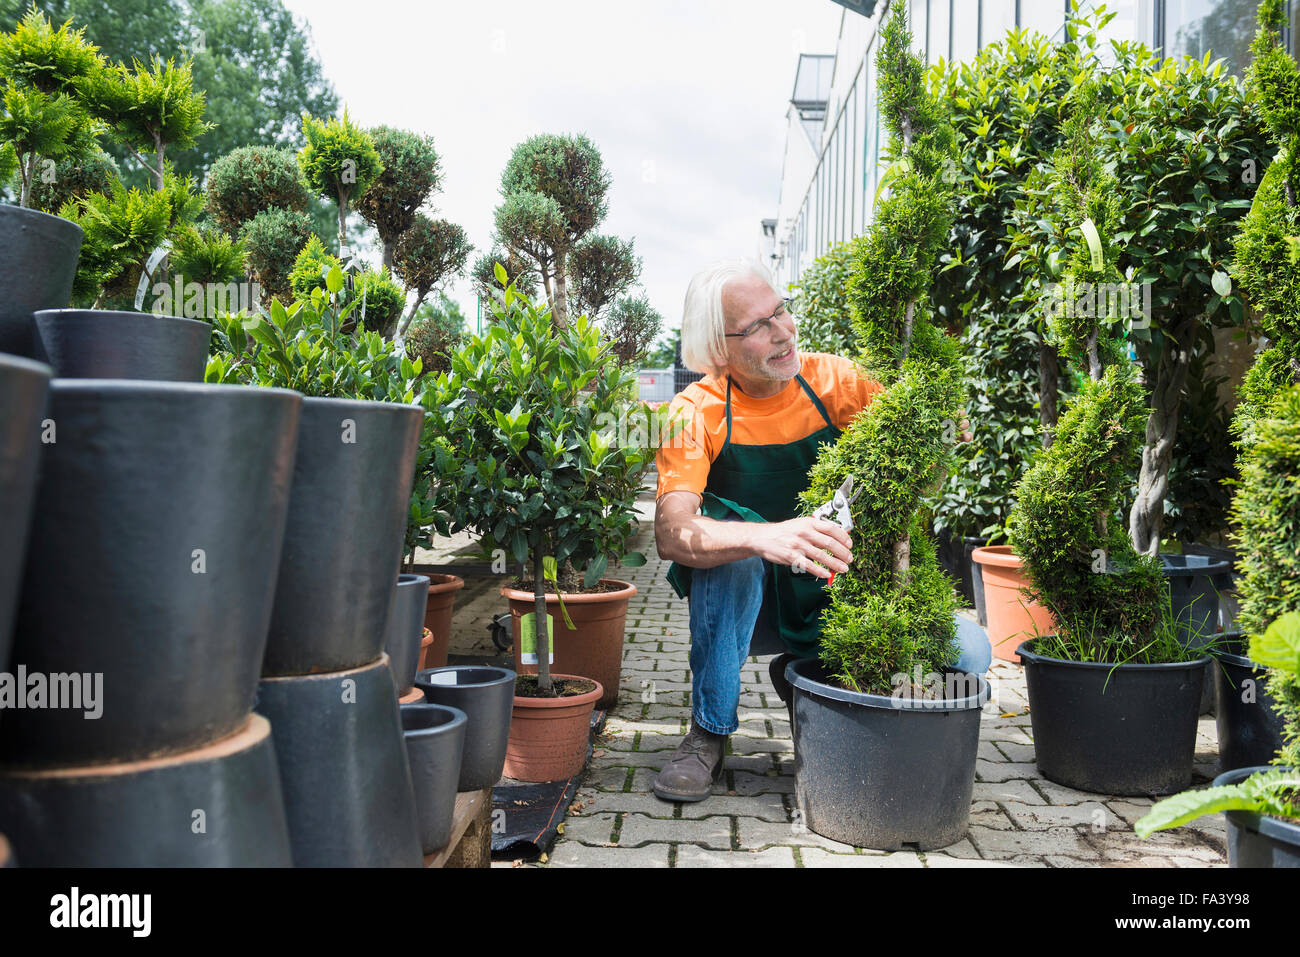 Male gardener pruning a plant in greenhouse, Augsburg, Bavaria, Germany - Stock Image